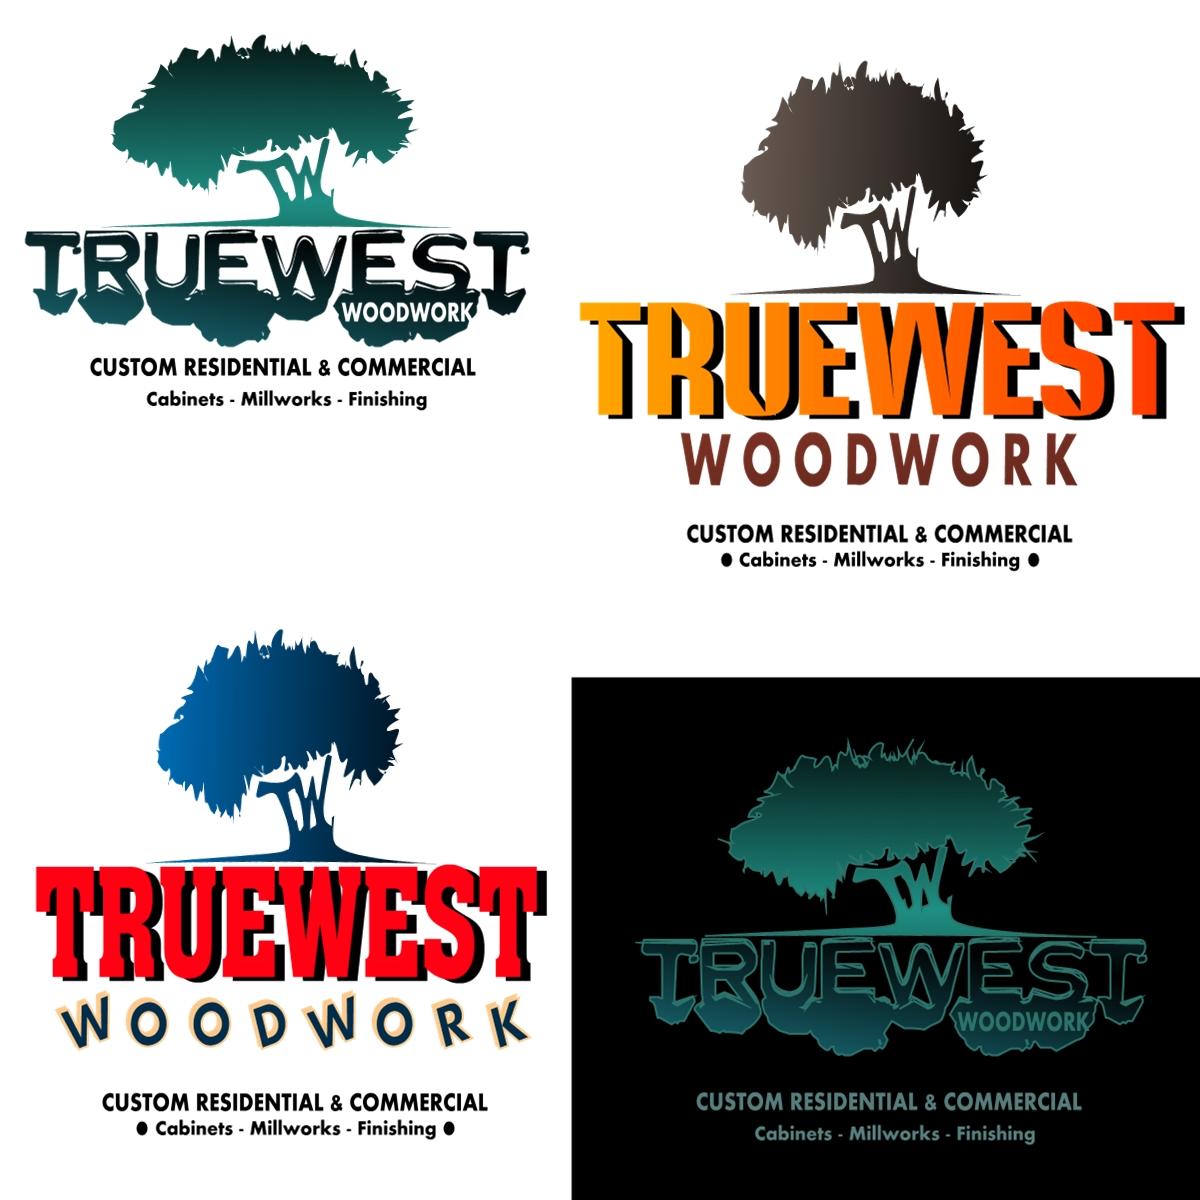 Logo Design by Joseph calunsag Cagaanan - Entry No. 30 in the Logo Design Contest True West Woodwork.